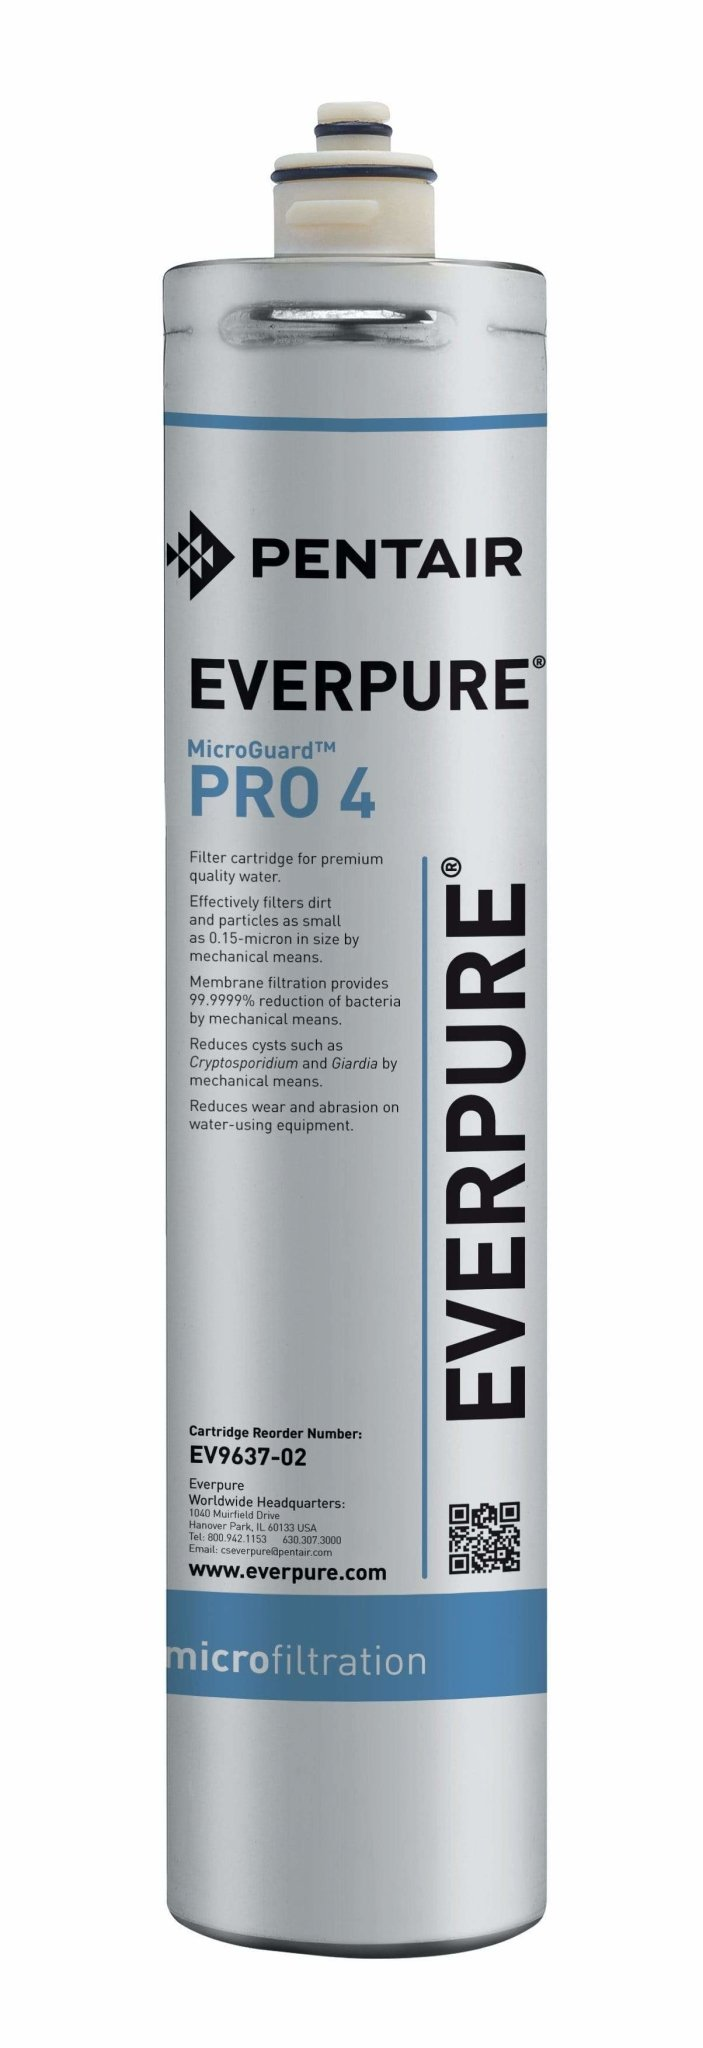 Everpure MicroGuard Pro 4 Cartridge EV9637-02 - Efilters.net